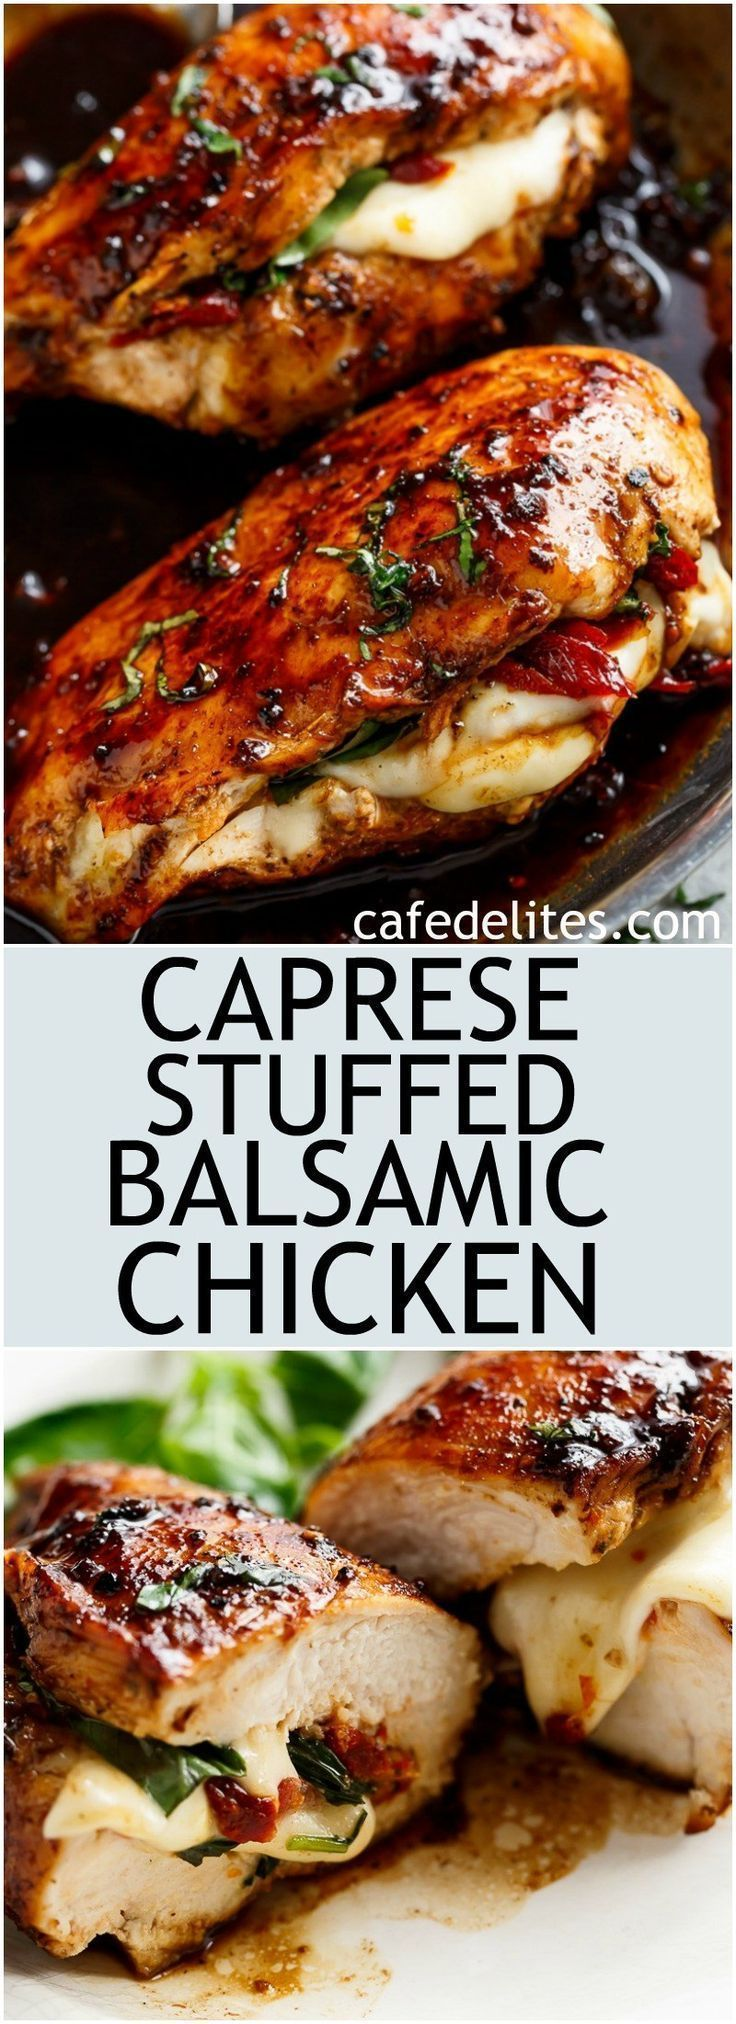 Caprese Stuffed Balsamic Chicken is a twist on Caprese, filled with both fresh AND Sun Dried Tomatoes for a flavour packed chicken! | https://cafedelites.com?utm_content=buffer9ac1f&utm_medium=social&utm_source=pinterest.com&utm_campaign=buffer